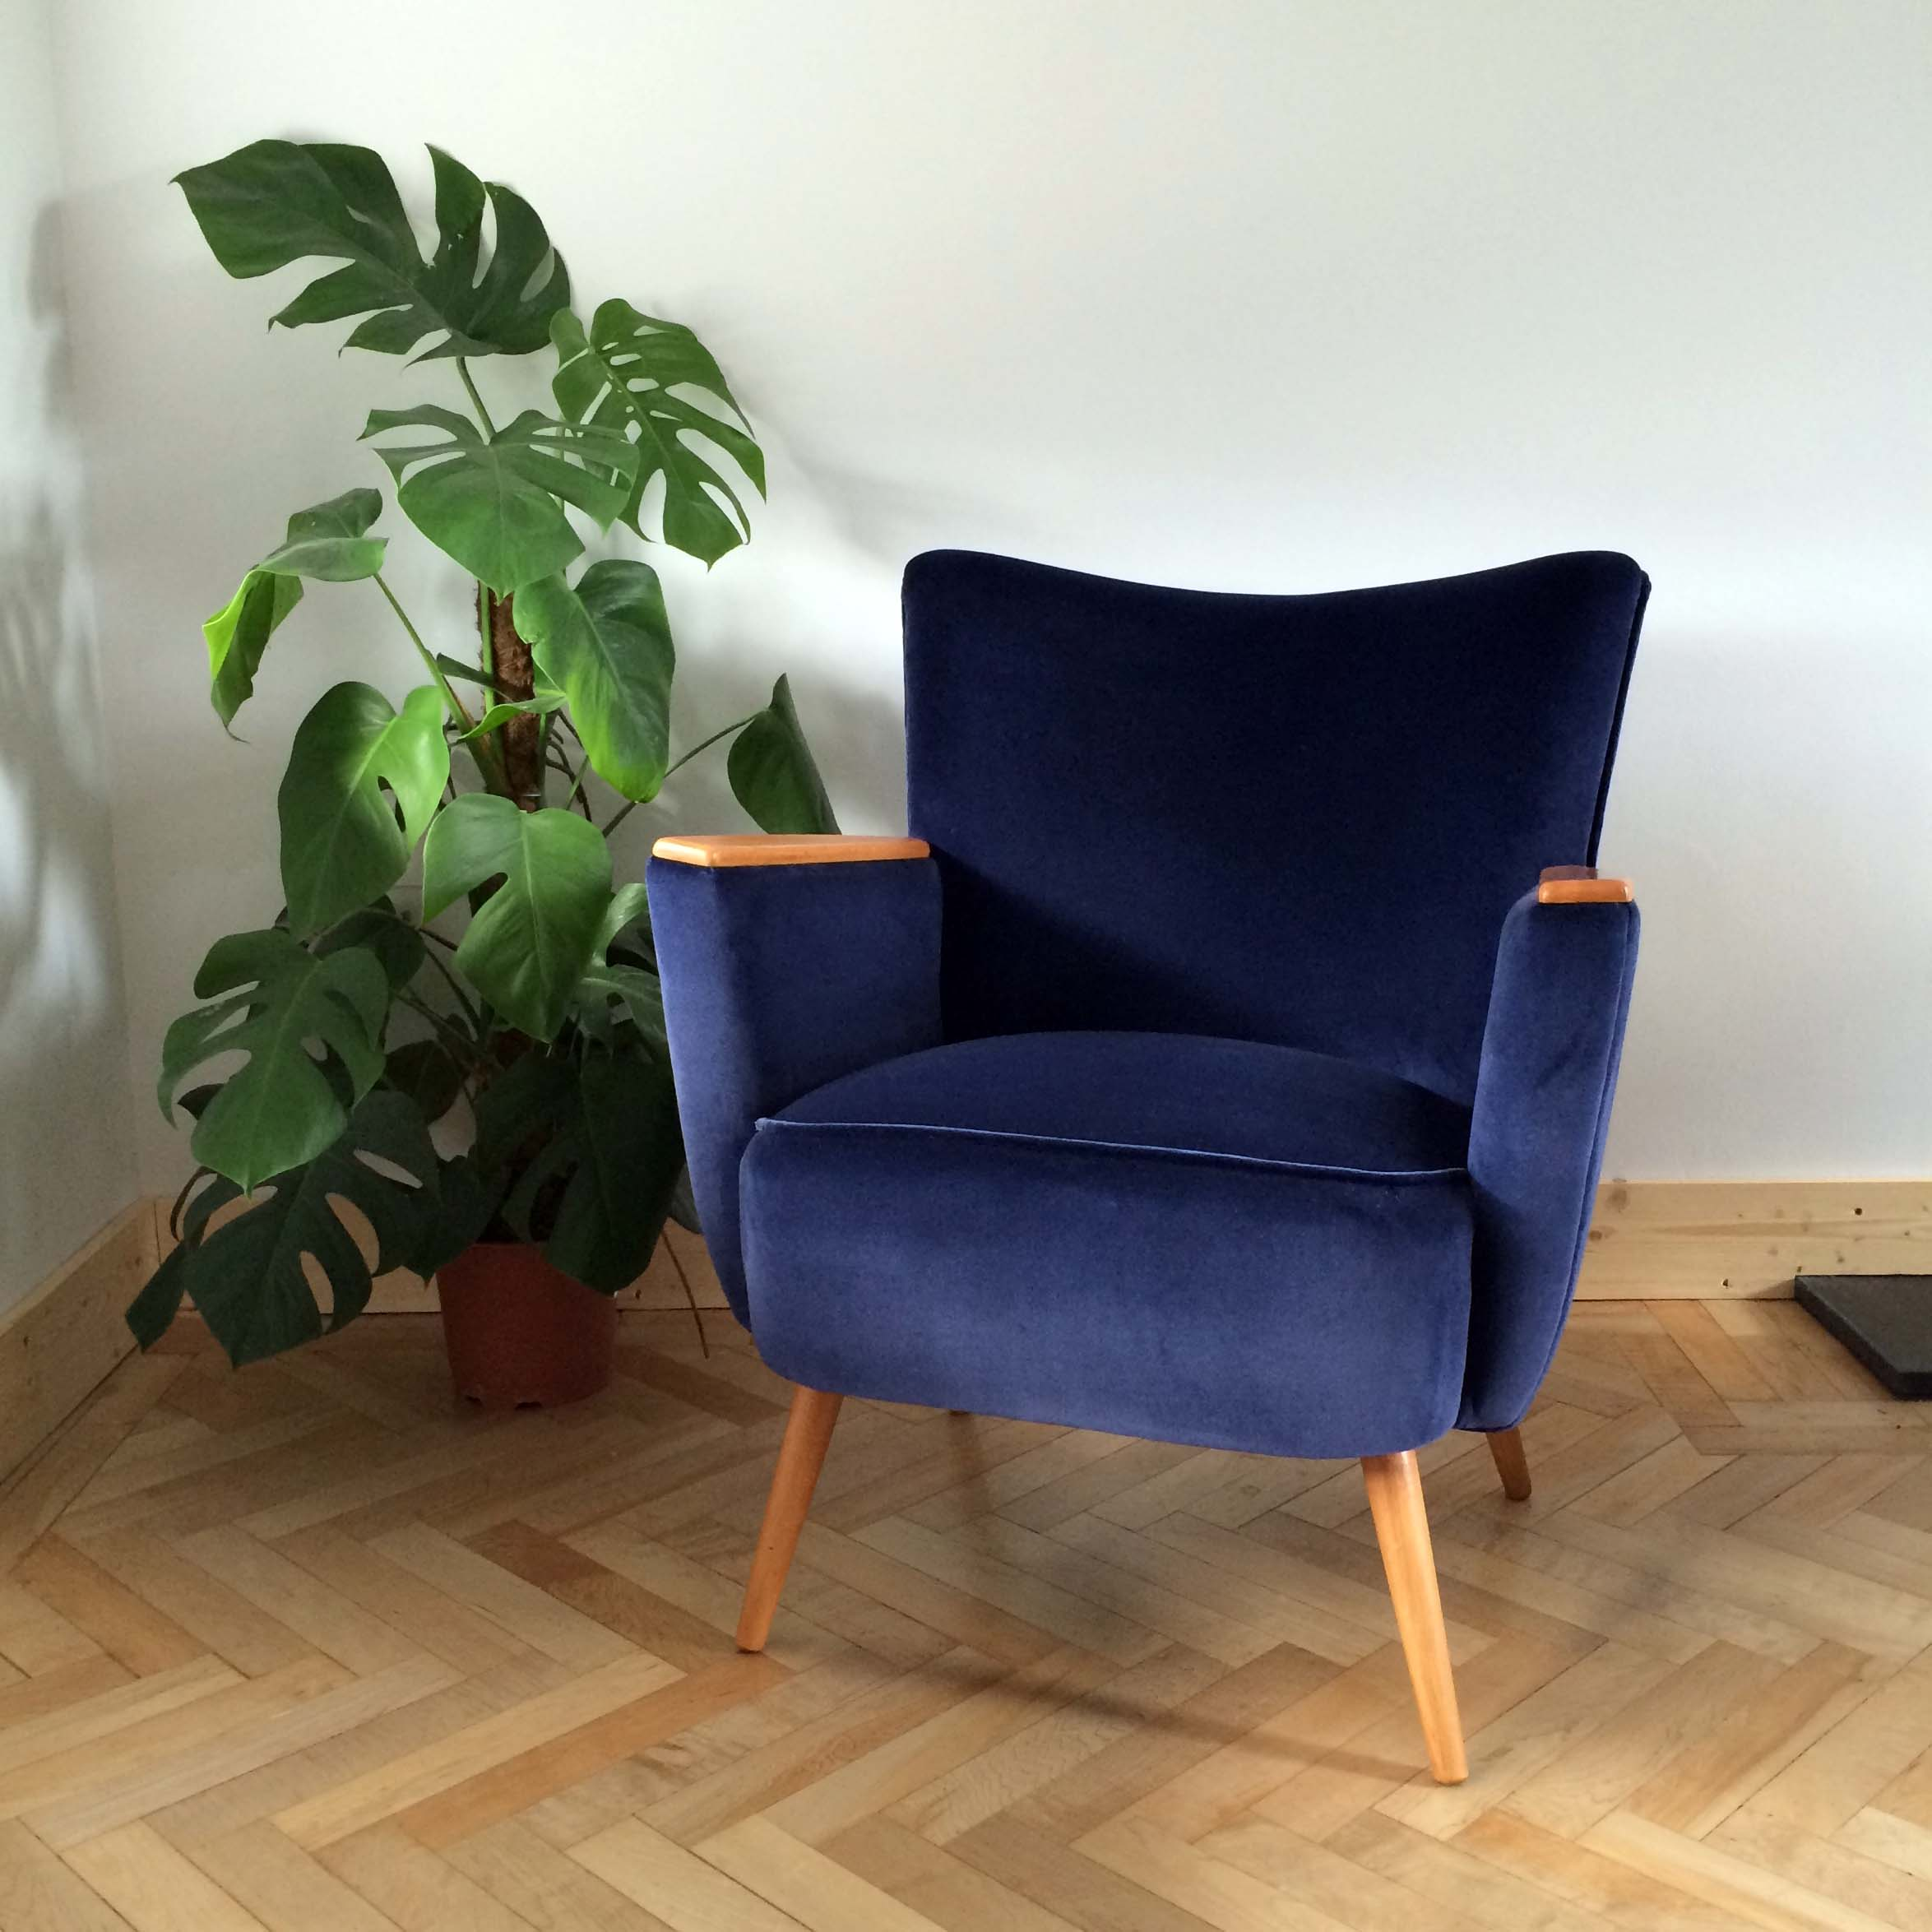 Popular Navy Velvet Danish Armchair | FLORRIE+BILL SQ99